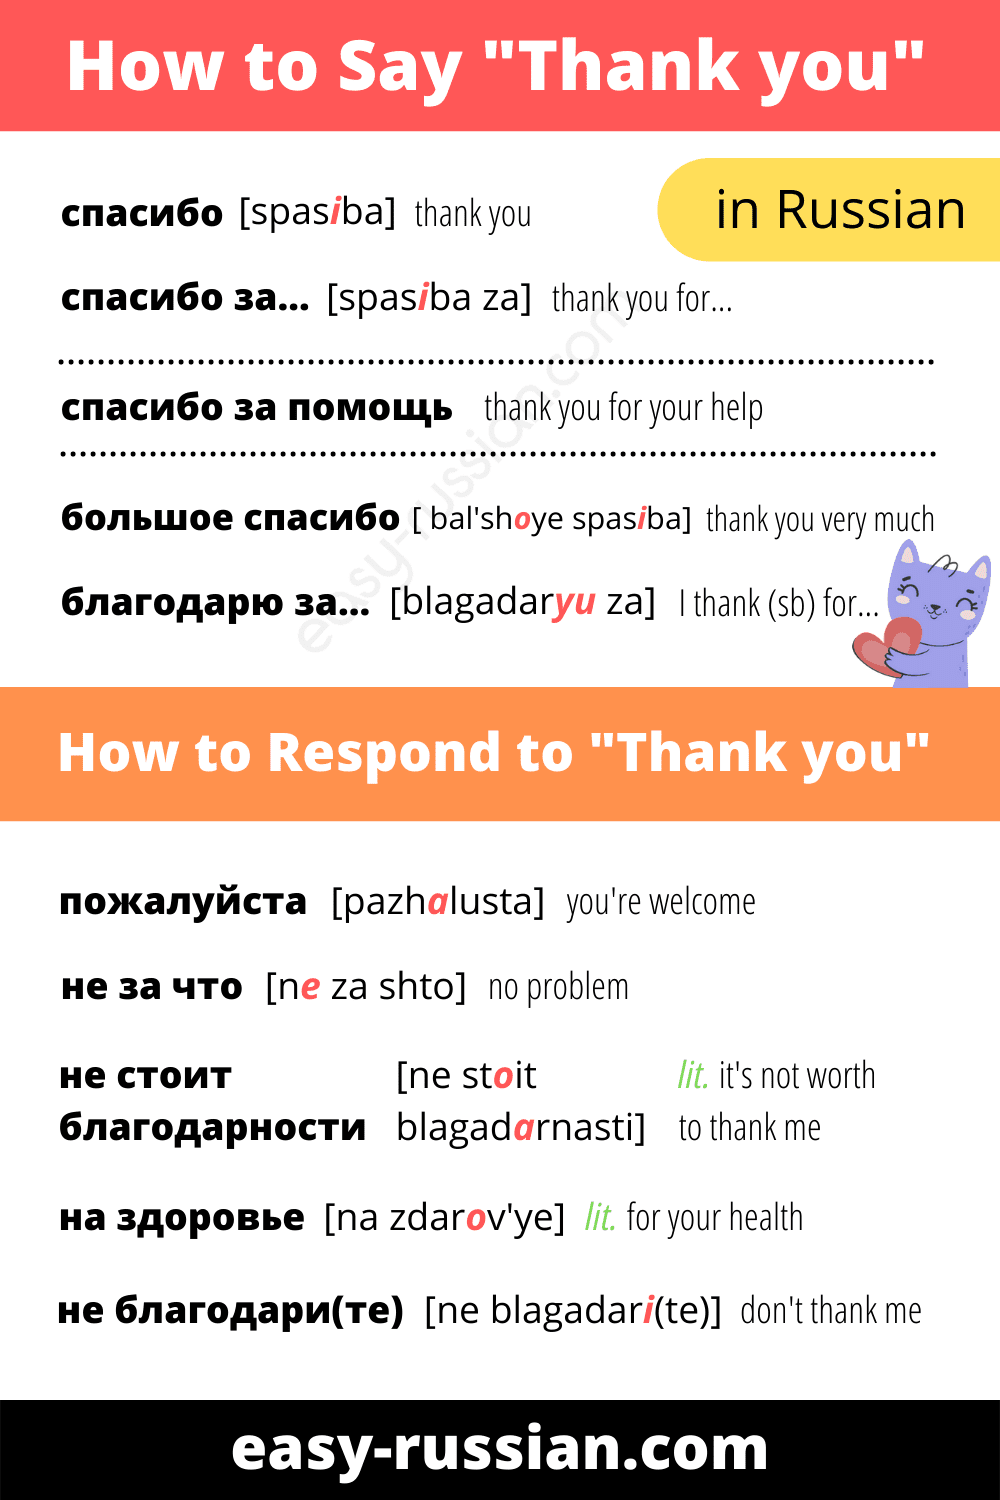 How to say and respond to thank you in Russian